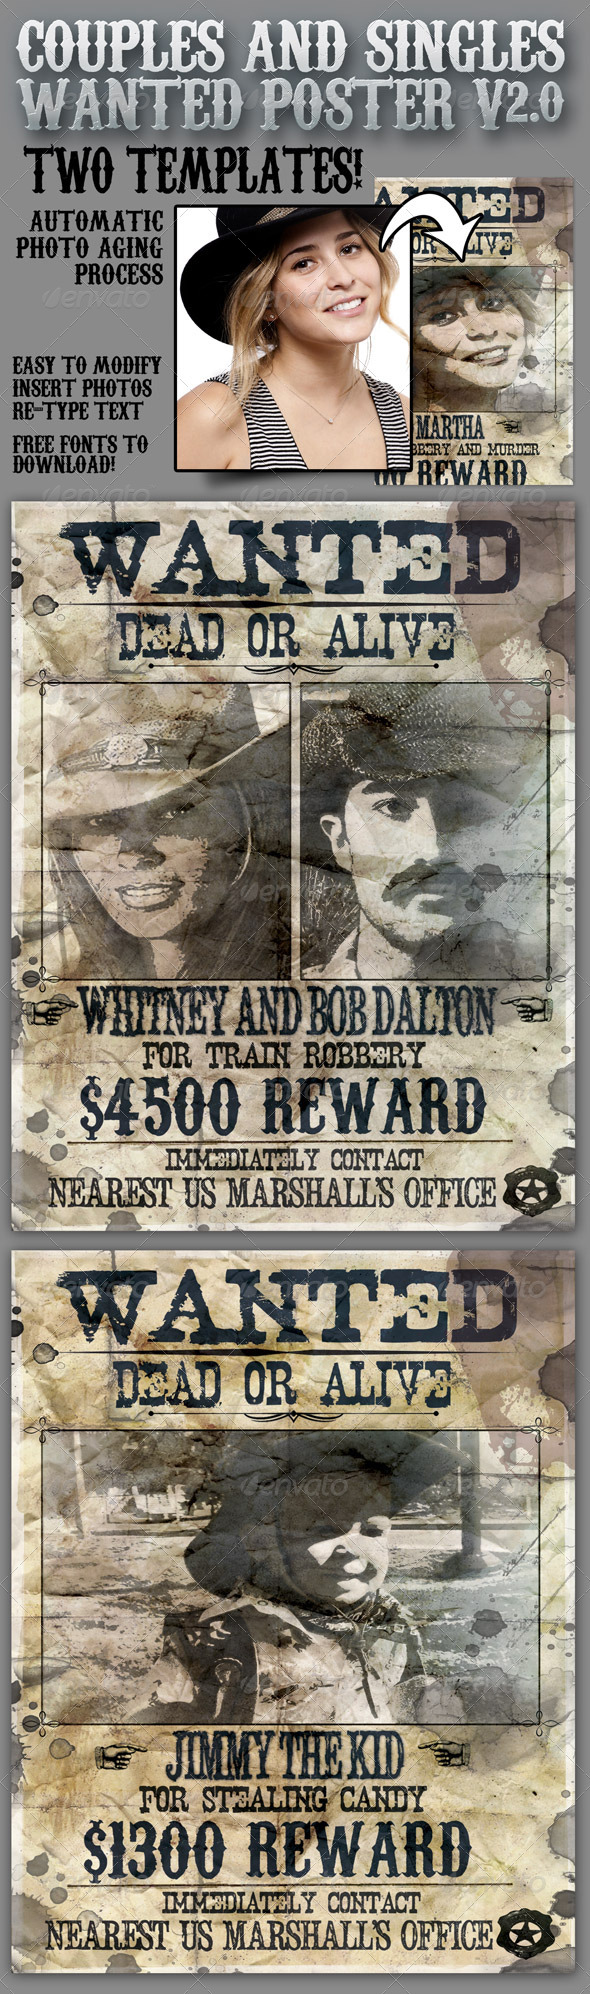 Wanted Poster 8.5x11 for Singles and Couples V2.0